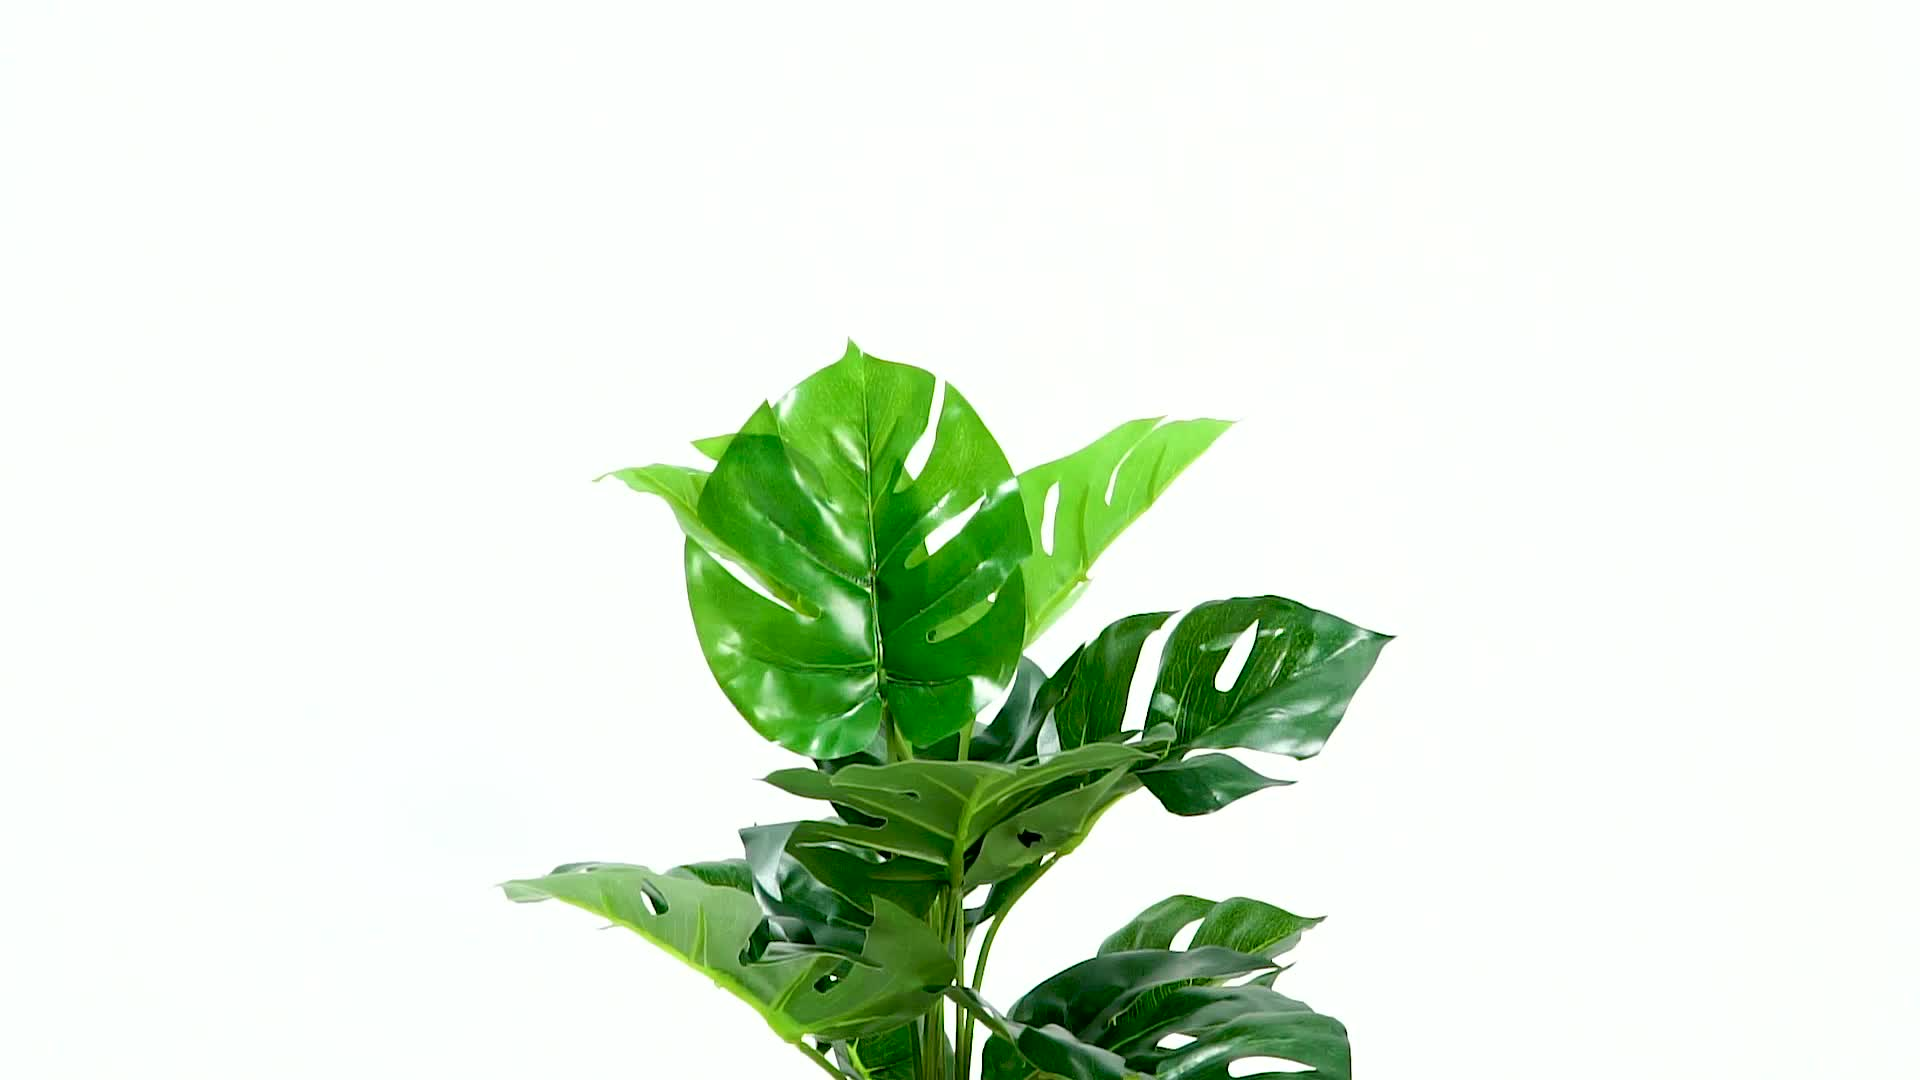 Buy Artificial Plants 2019 New Product Artificial Plants Bonsai Trees For Sale